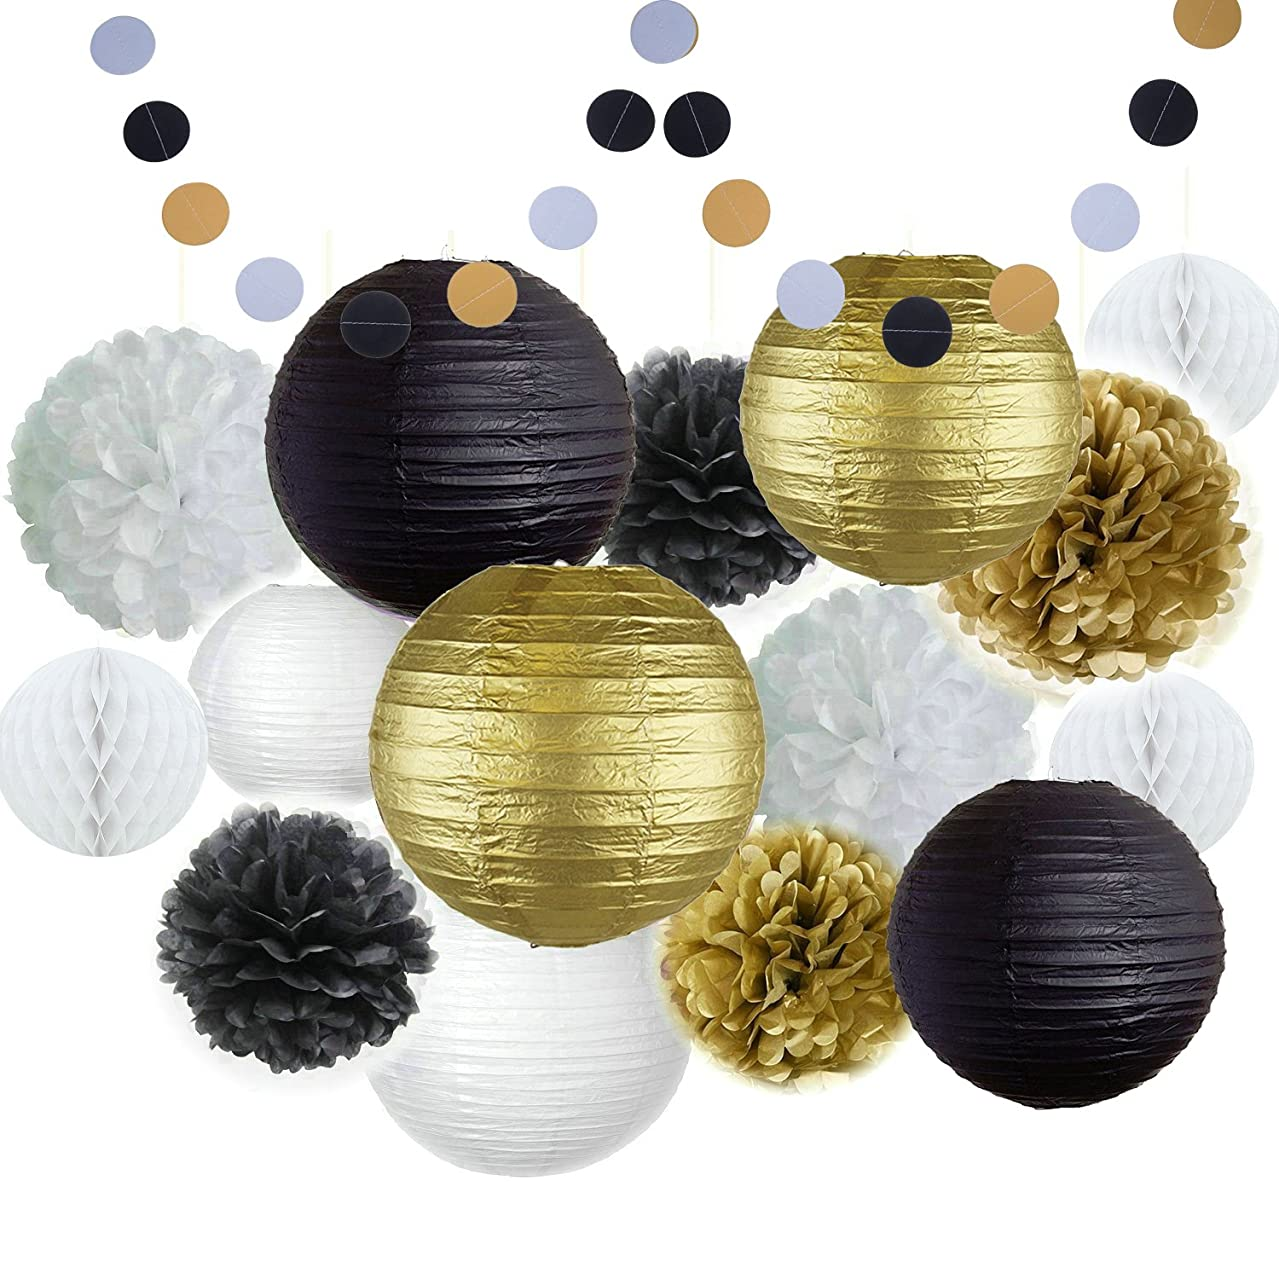 Happy New Year Party Decorations Black White Gold Tissue Paper Pom Pom Paper Lantern Paper Honeycomb Balls Polka Dot Garland for Great Decorations/ New Year's Eve Party /Birthday Decorations/Shower